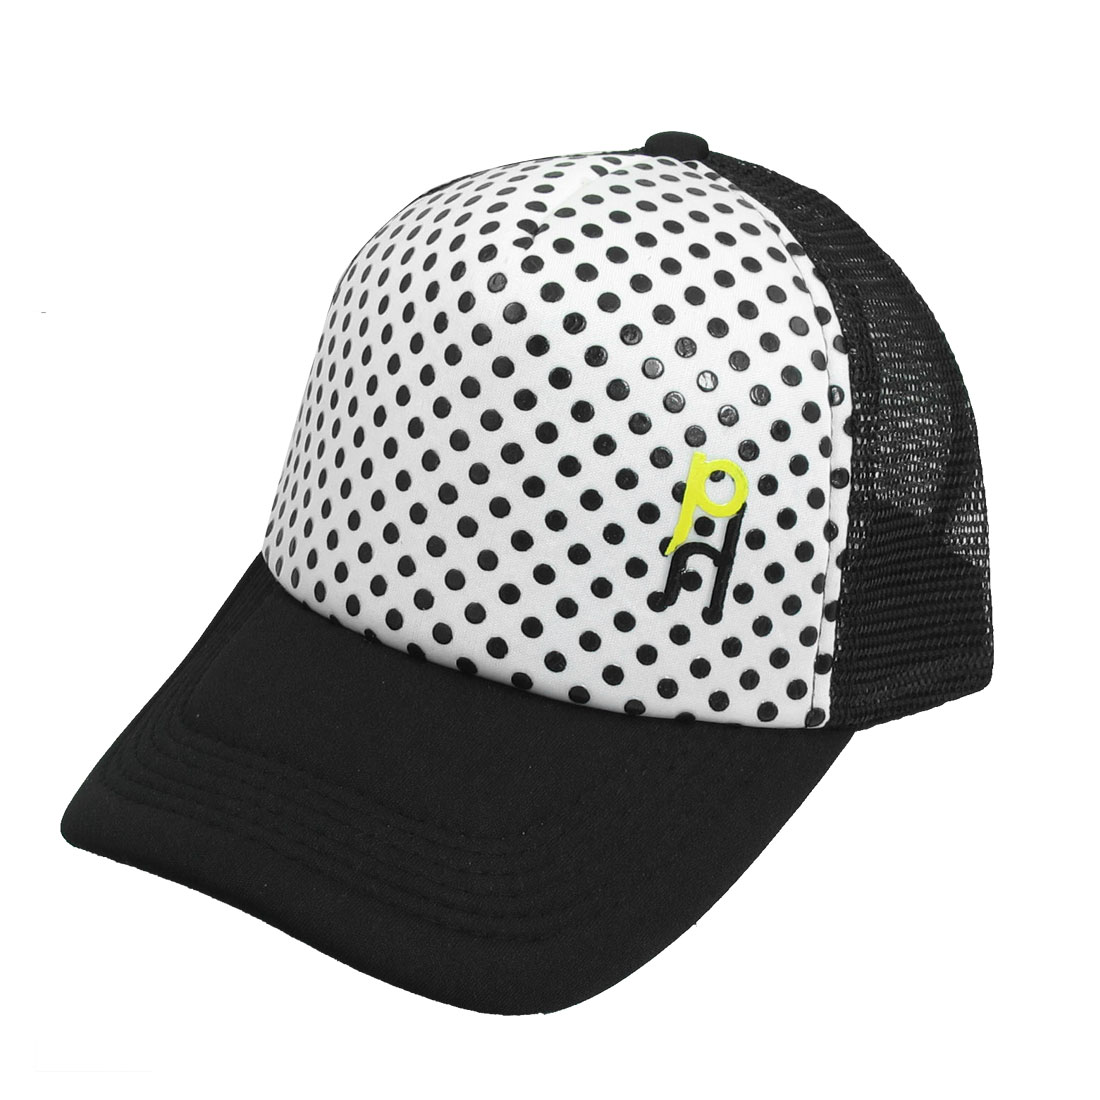 Unisex White Black Dots Printed Meshy Back Adjustable Strap Hat Sun Visor Cap